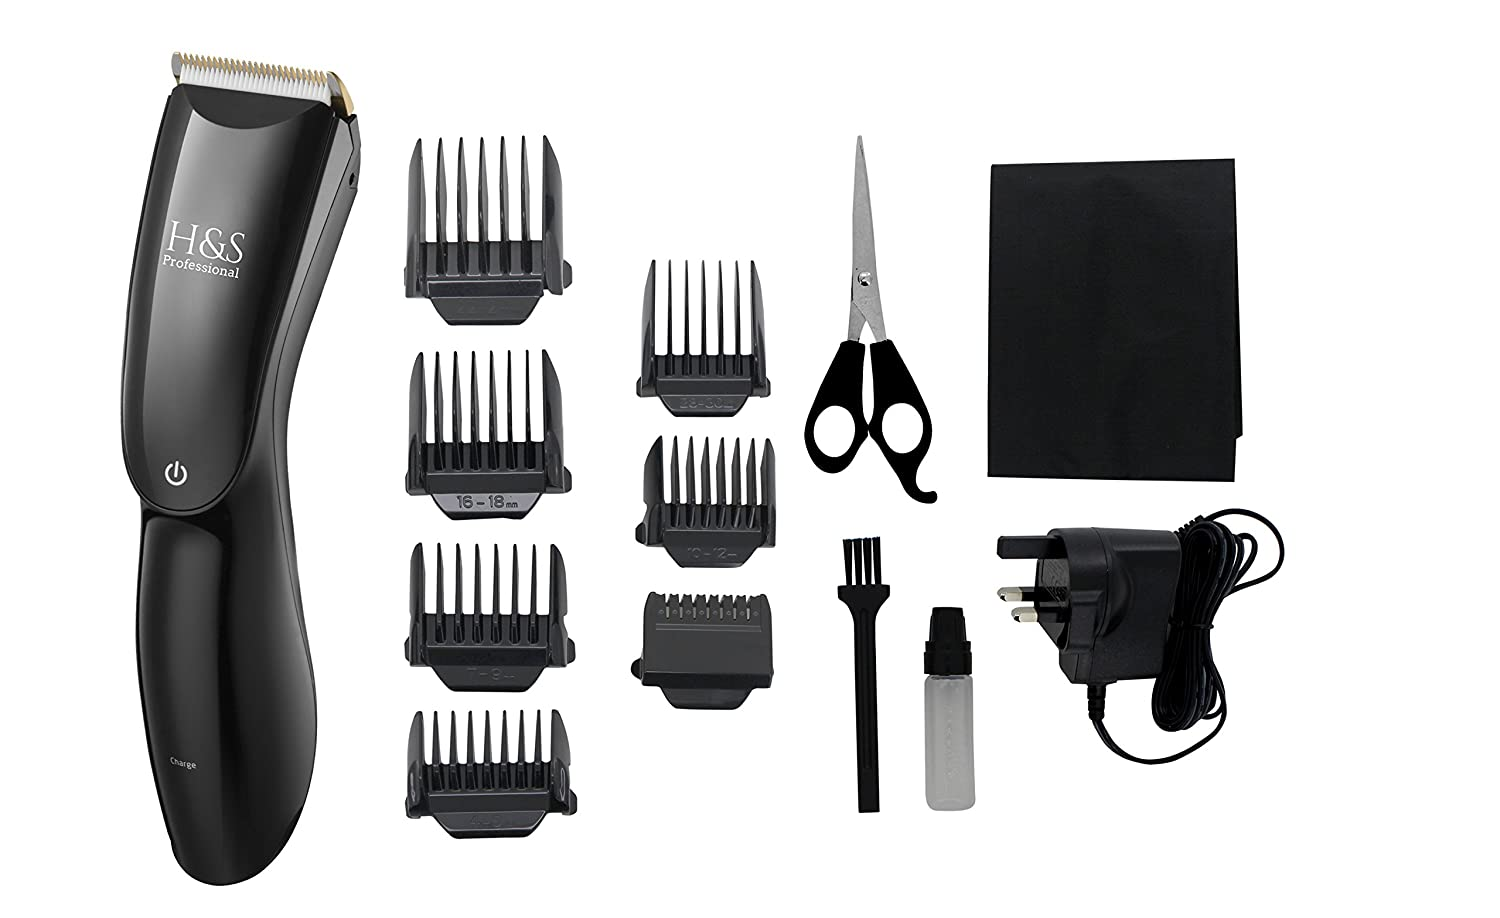 H& S Pro Cordless Hair Clippers with LED Display, Rechargeable Hair Trimmer, Haircut Kit with 8 Guide Combs 100% Money Back Guarantee of Satisfaction! JLS Personal Care Ltd.